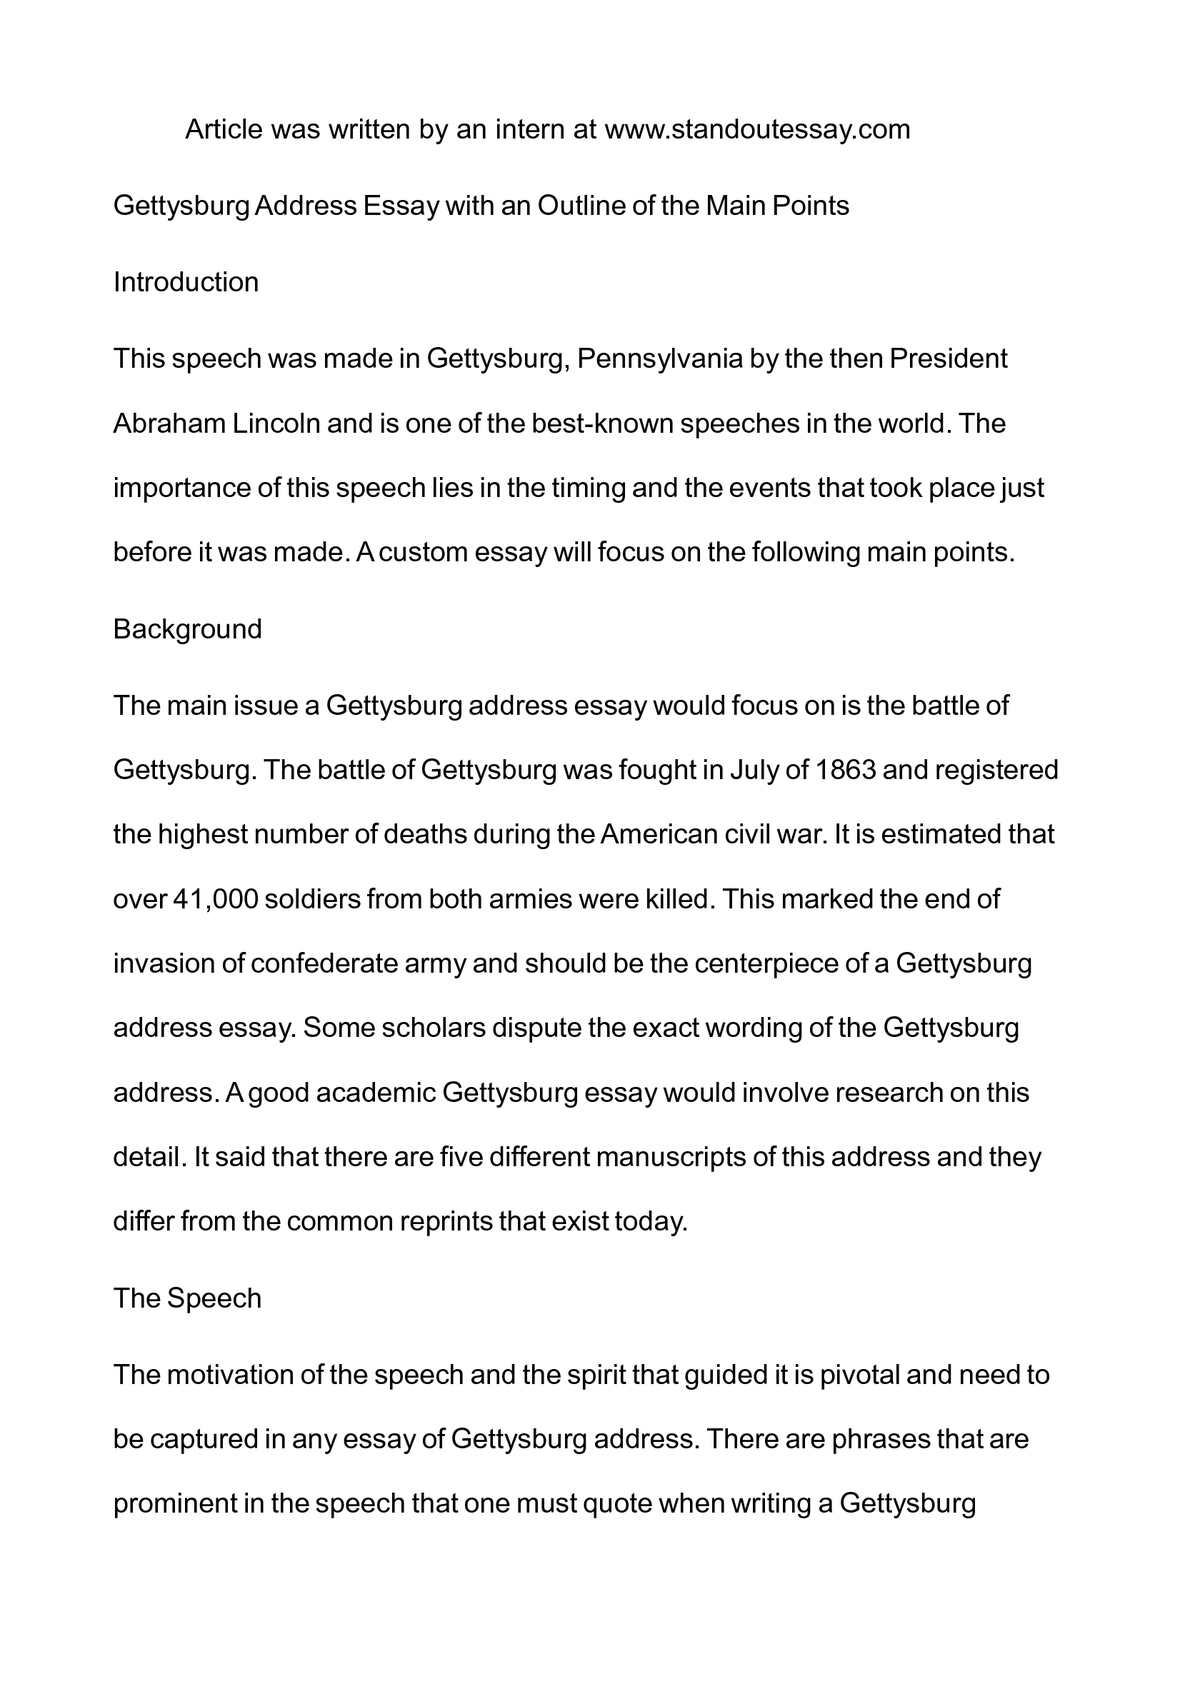 an essay on the gettysburg address The gettysburg address in the beginning of the gettysburg address, abraham lincoln stated that this nation is founded on the principle that all men are created equal.